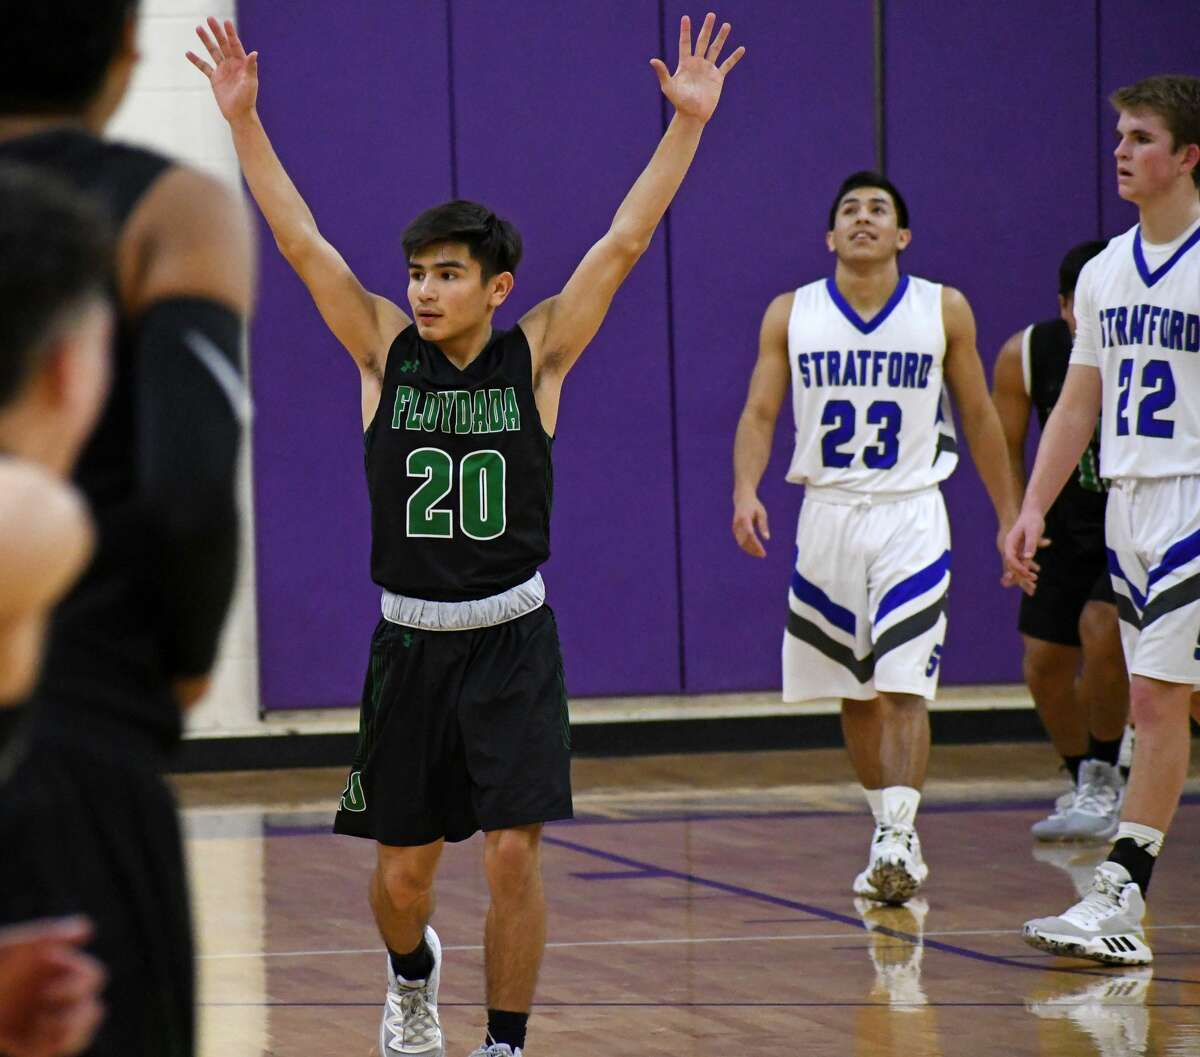 Floydada senior Marcus Perez celebrates his team's 64-63 win over Stratford in a Class 2A area championship boys basketball game on Friday, Nove. 28, 2020 at Canyon High School.